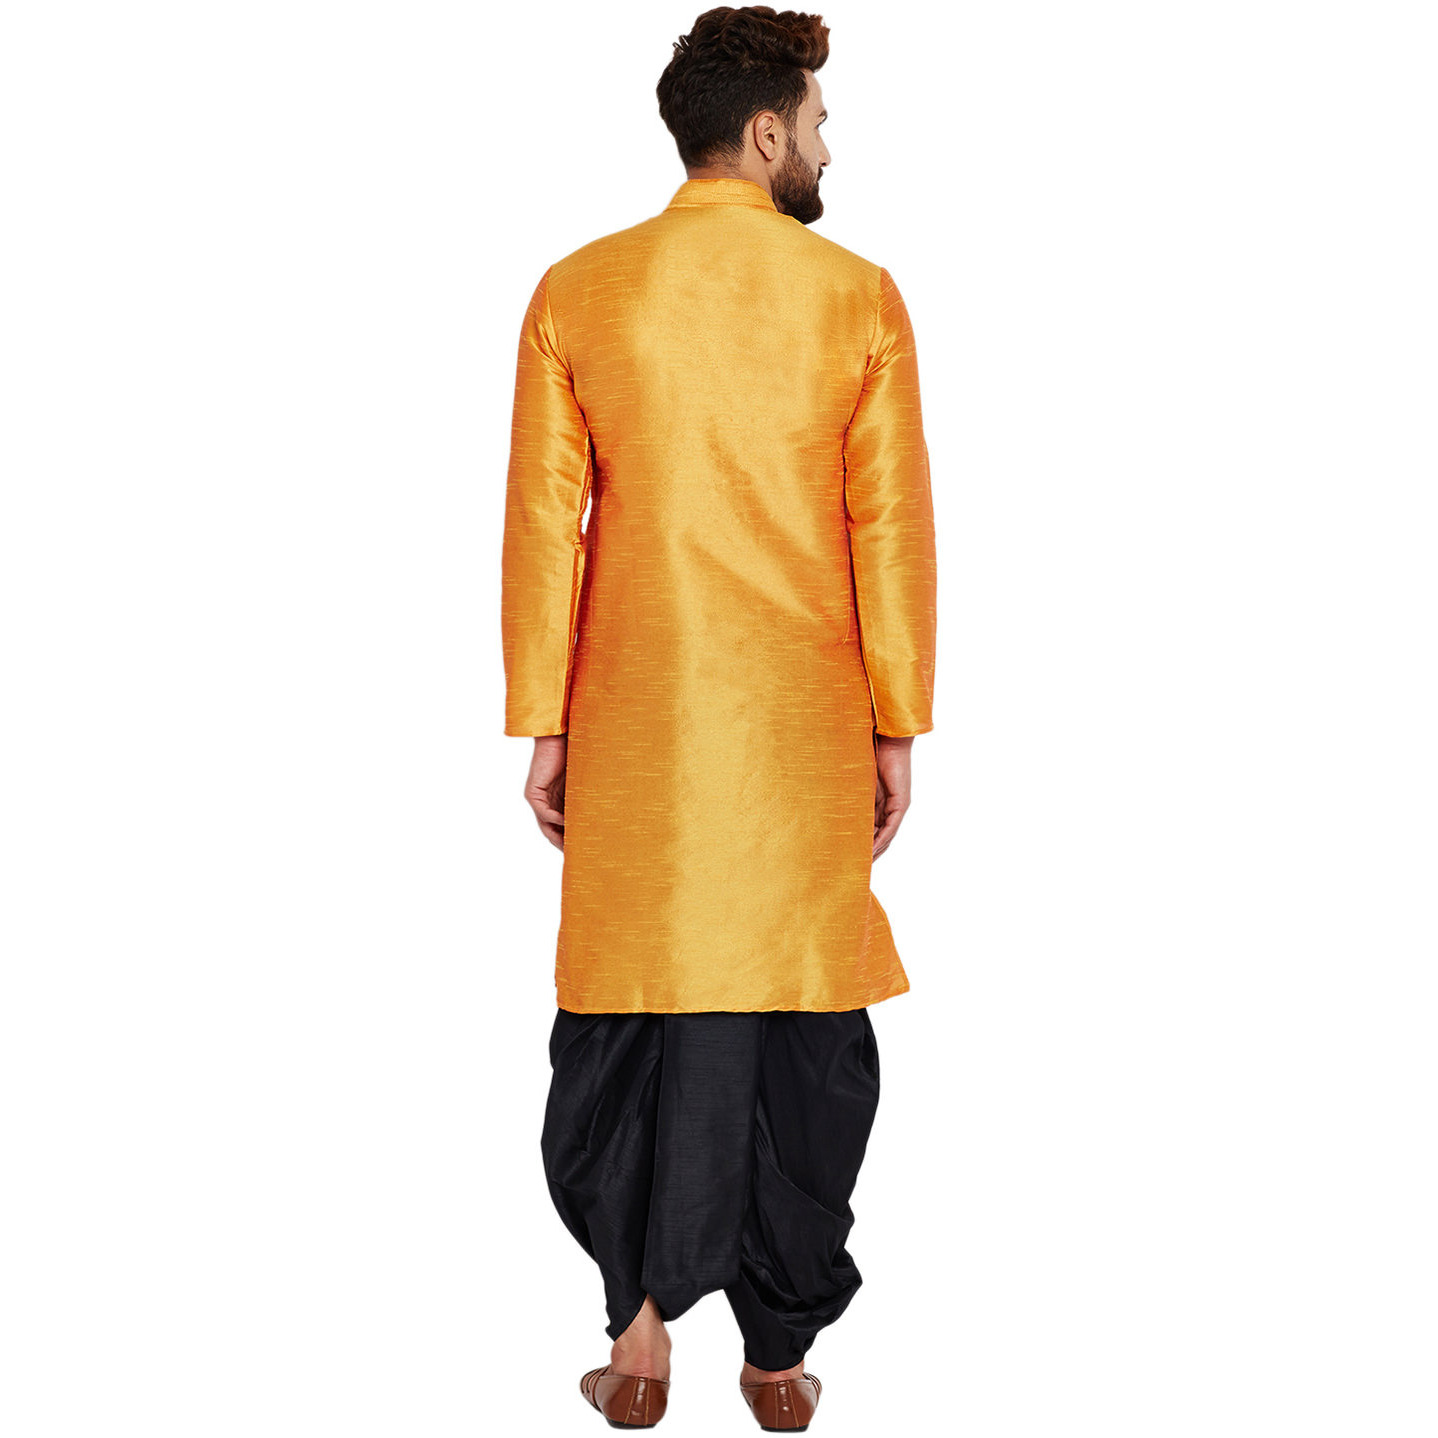 Sojanya (Since 1958)B Men's Traditional Ethnic Wear Dupion Silk Mustard and BlackThread embroidery Dhoti Kurta Set Regular Fit